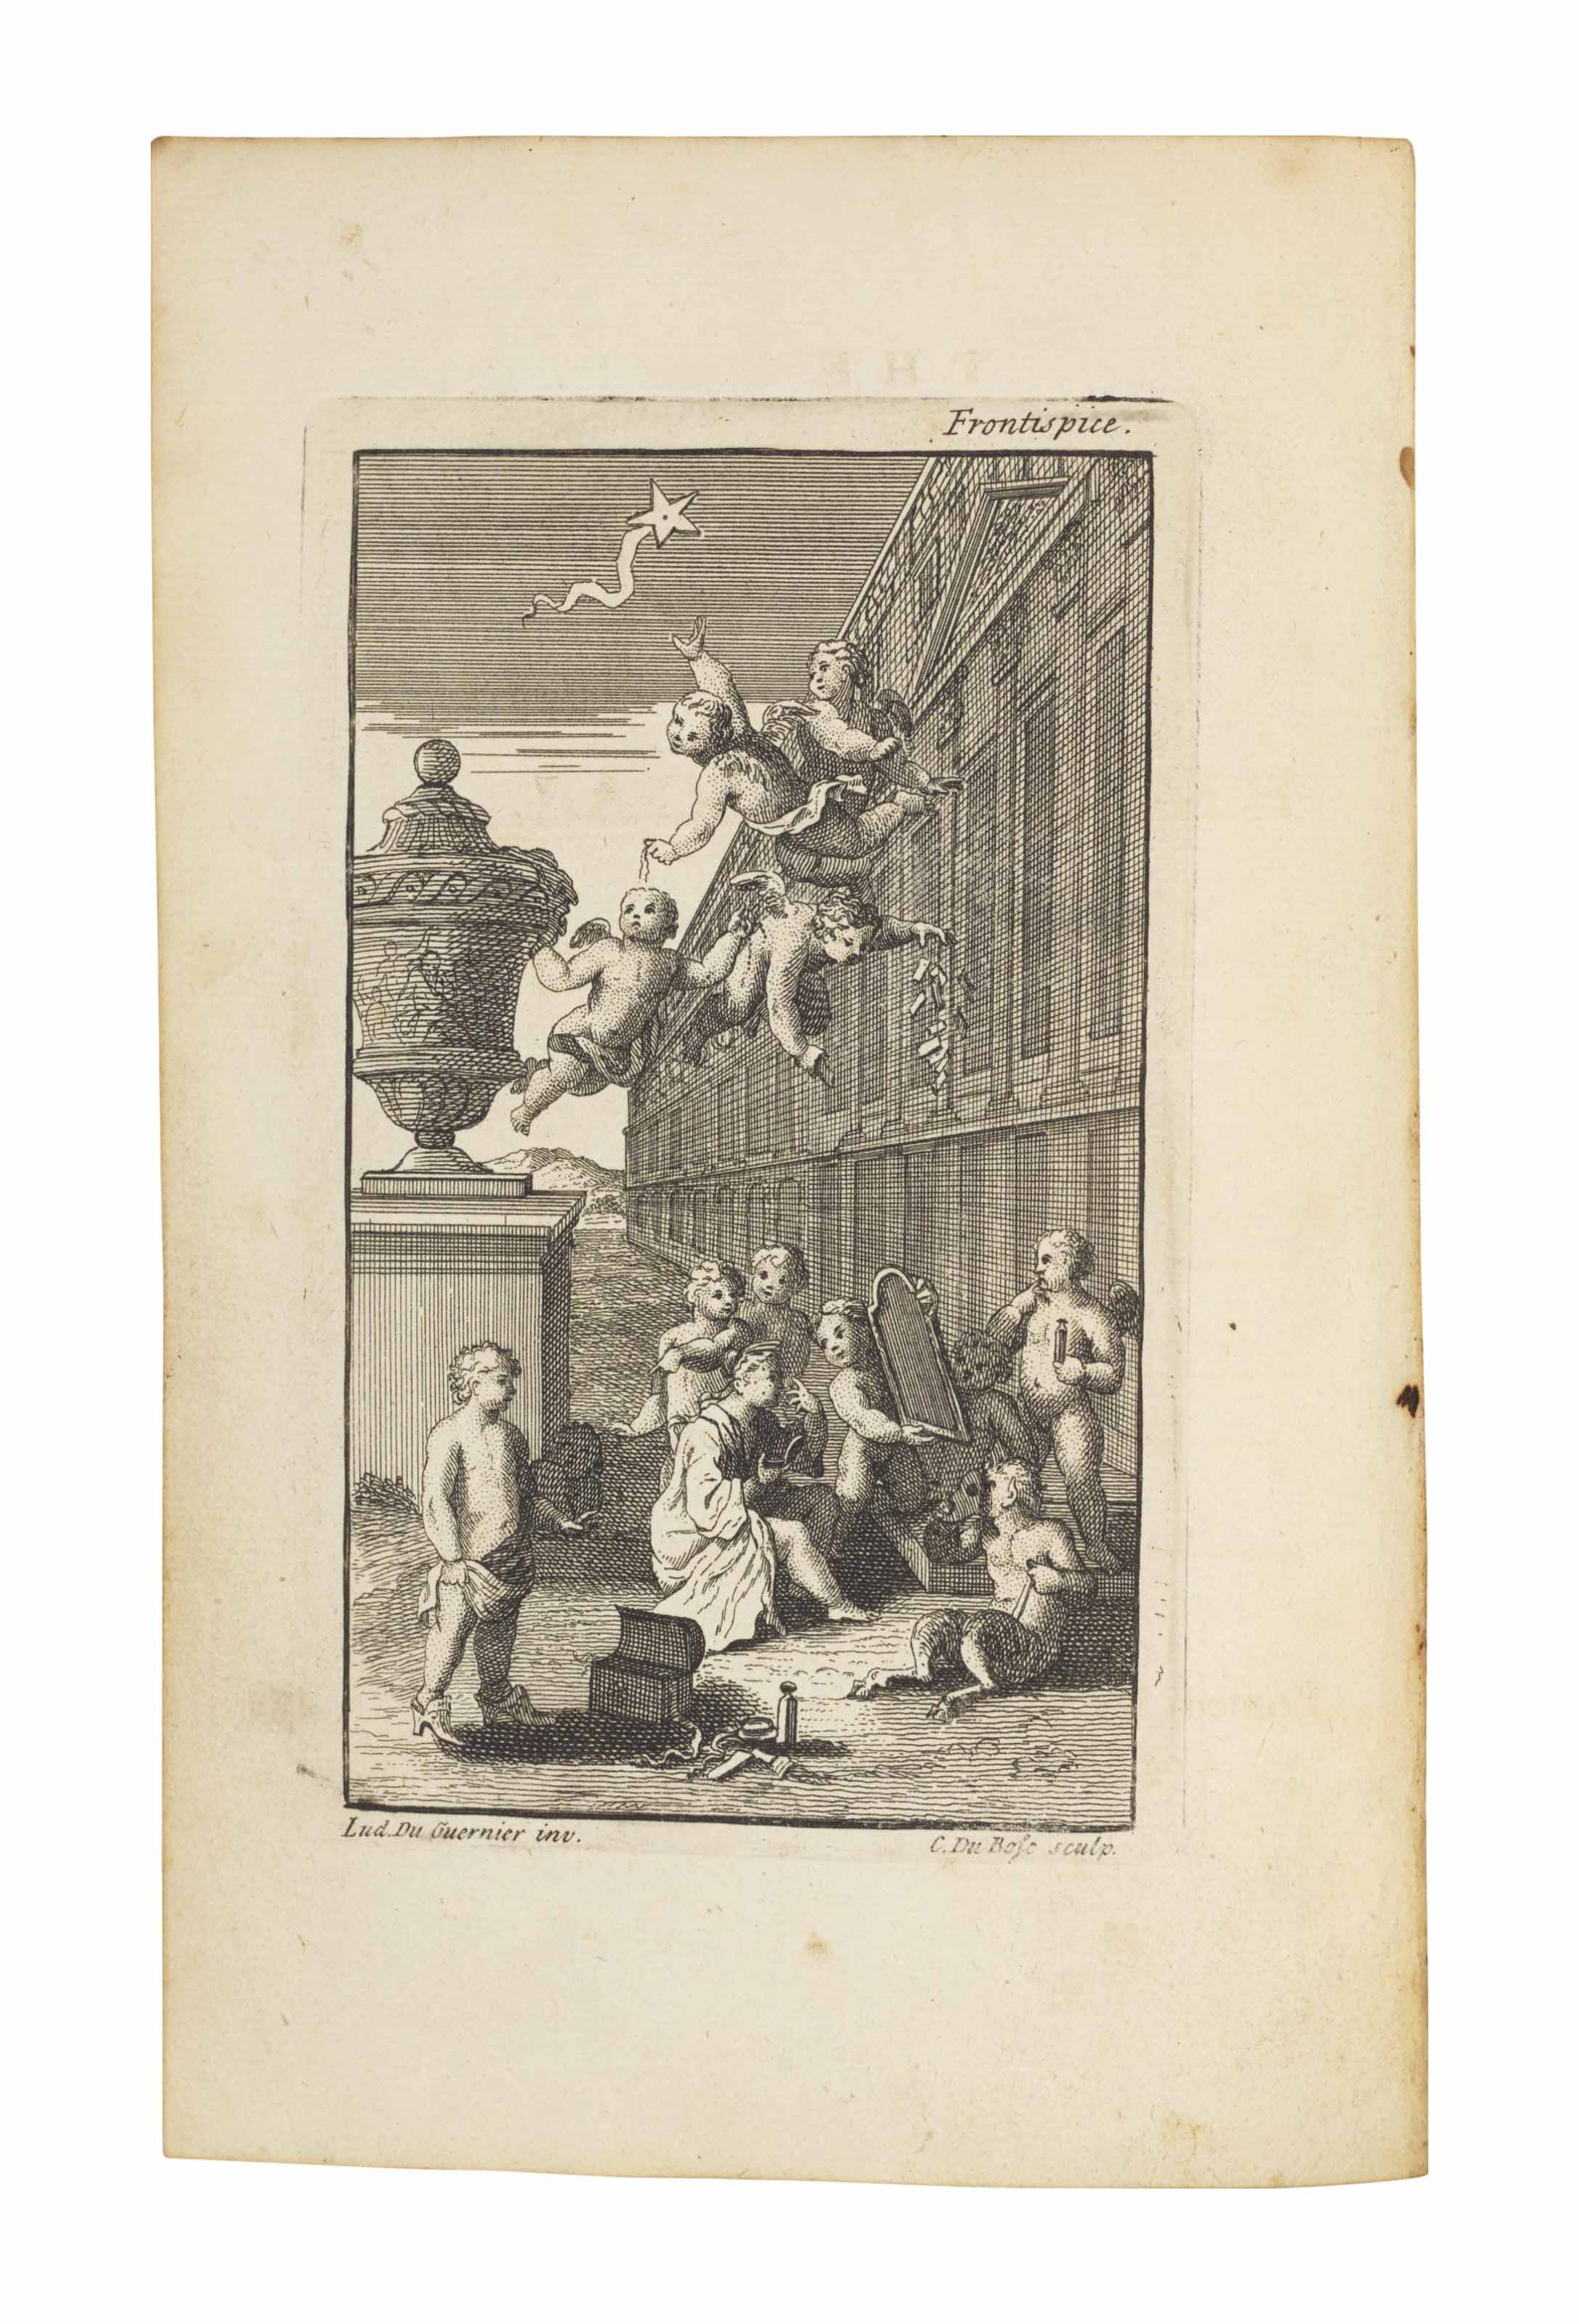 POPE, Alexander. The Rape of the Lock. An heroi-comical poem. In five canto's. London: Bernard Lintott, 1714.